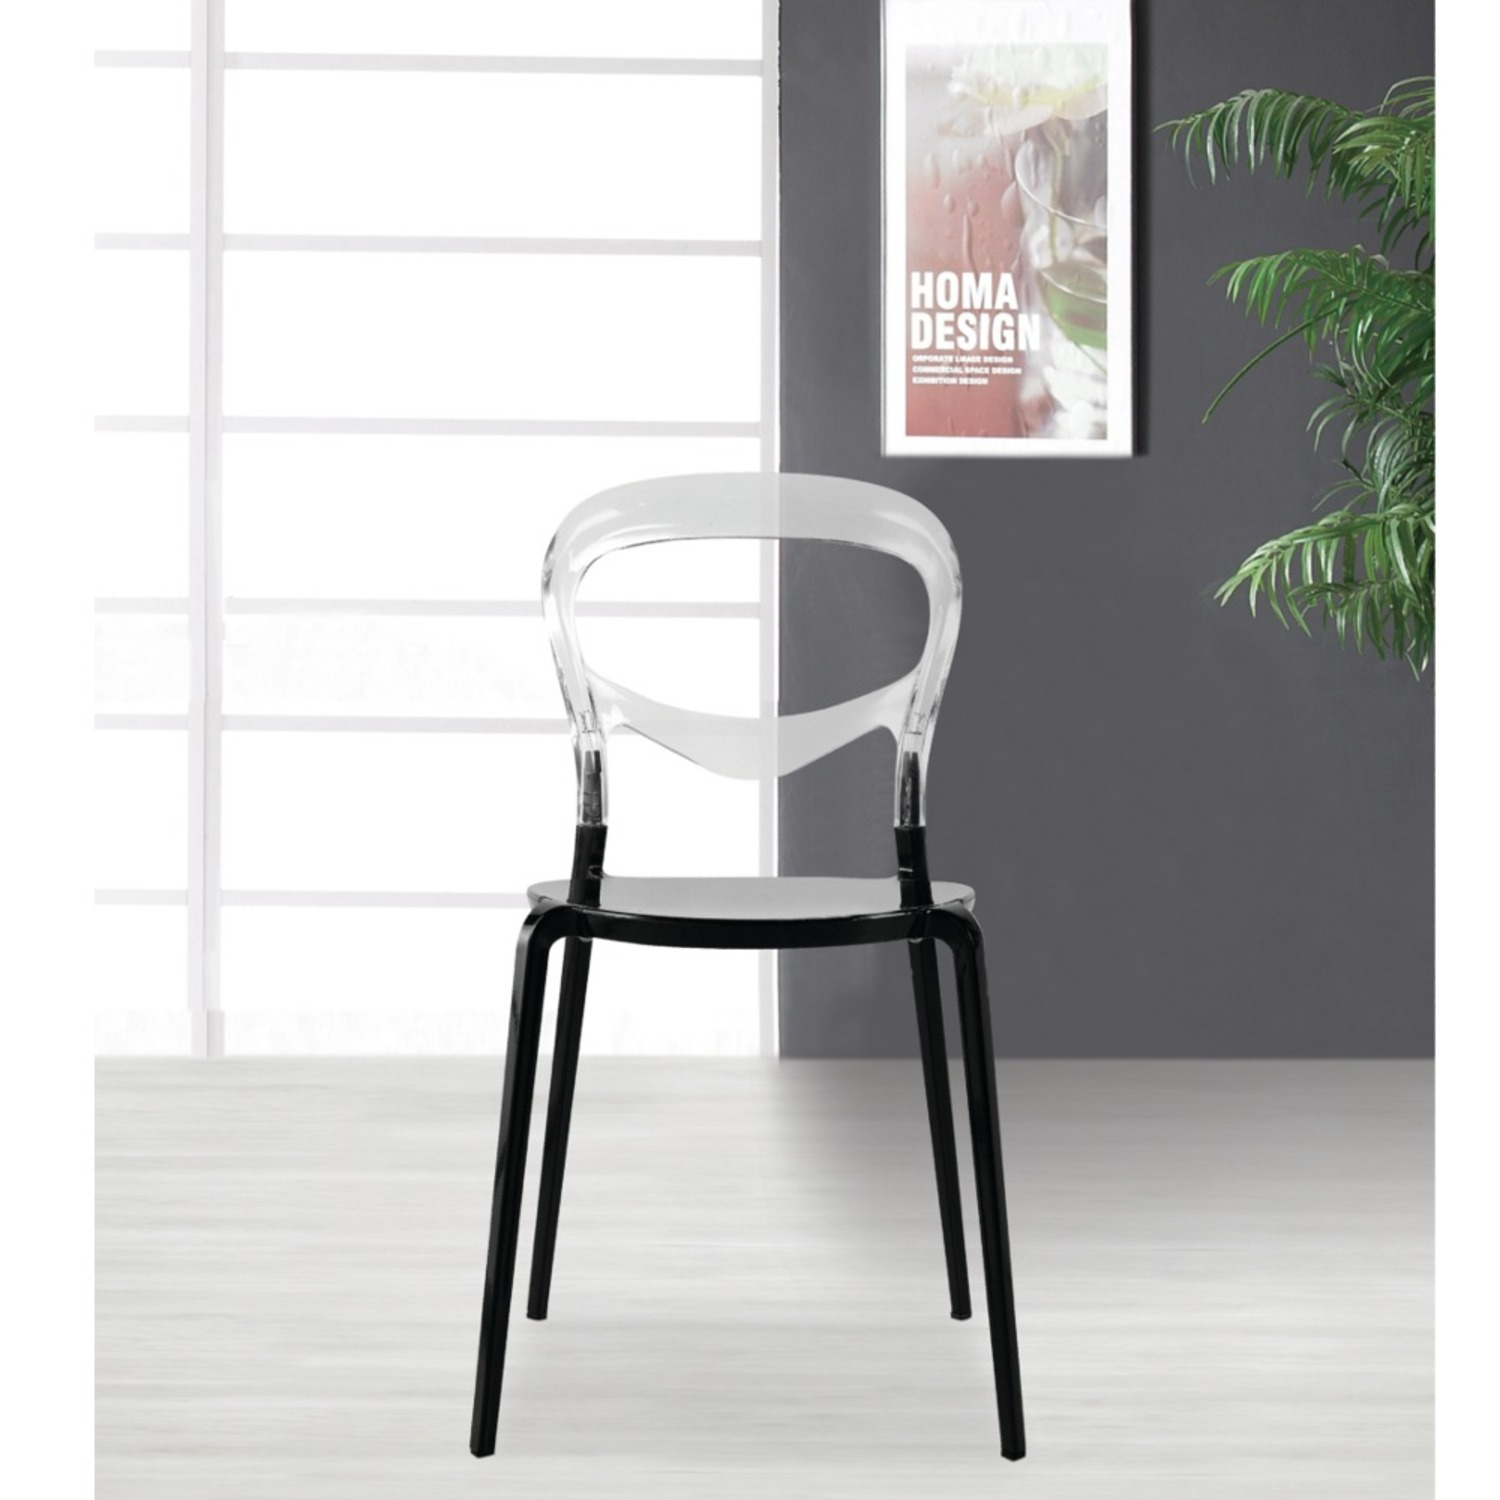 Dining Chair In Transparent Acrylic Finish - image-2